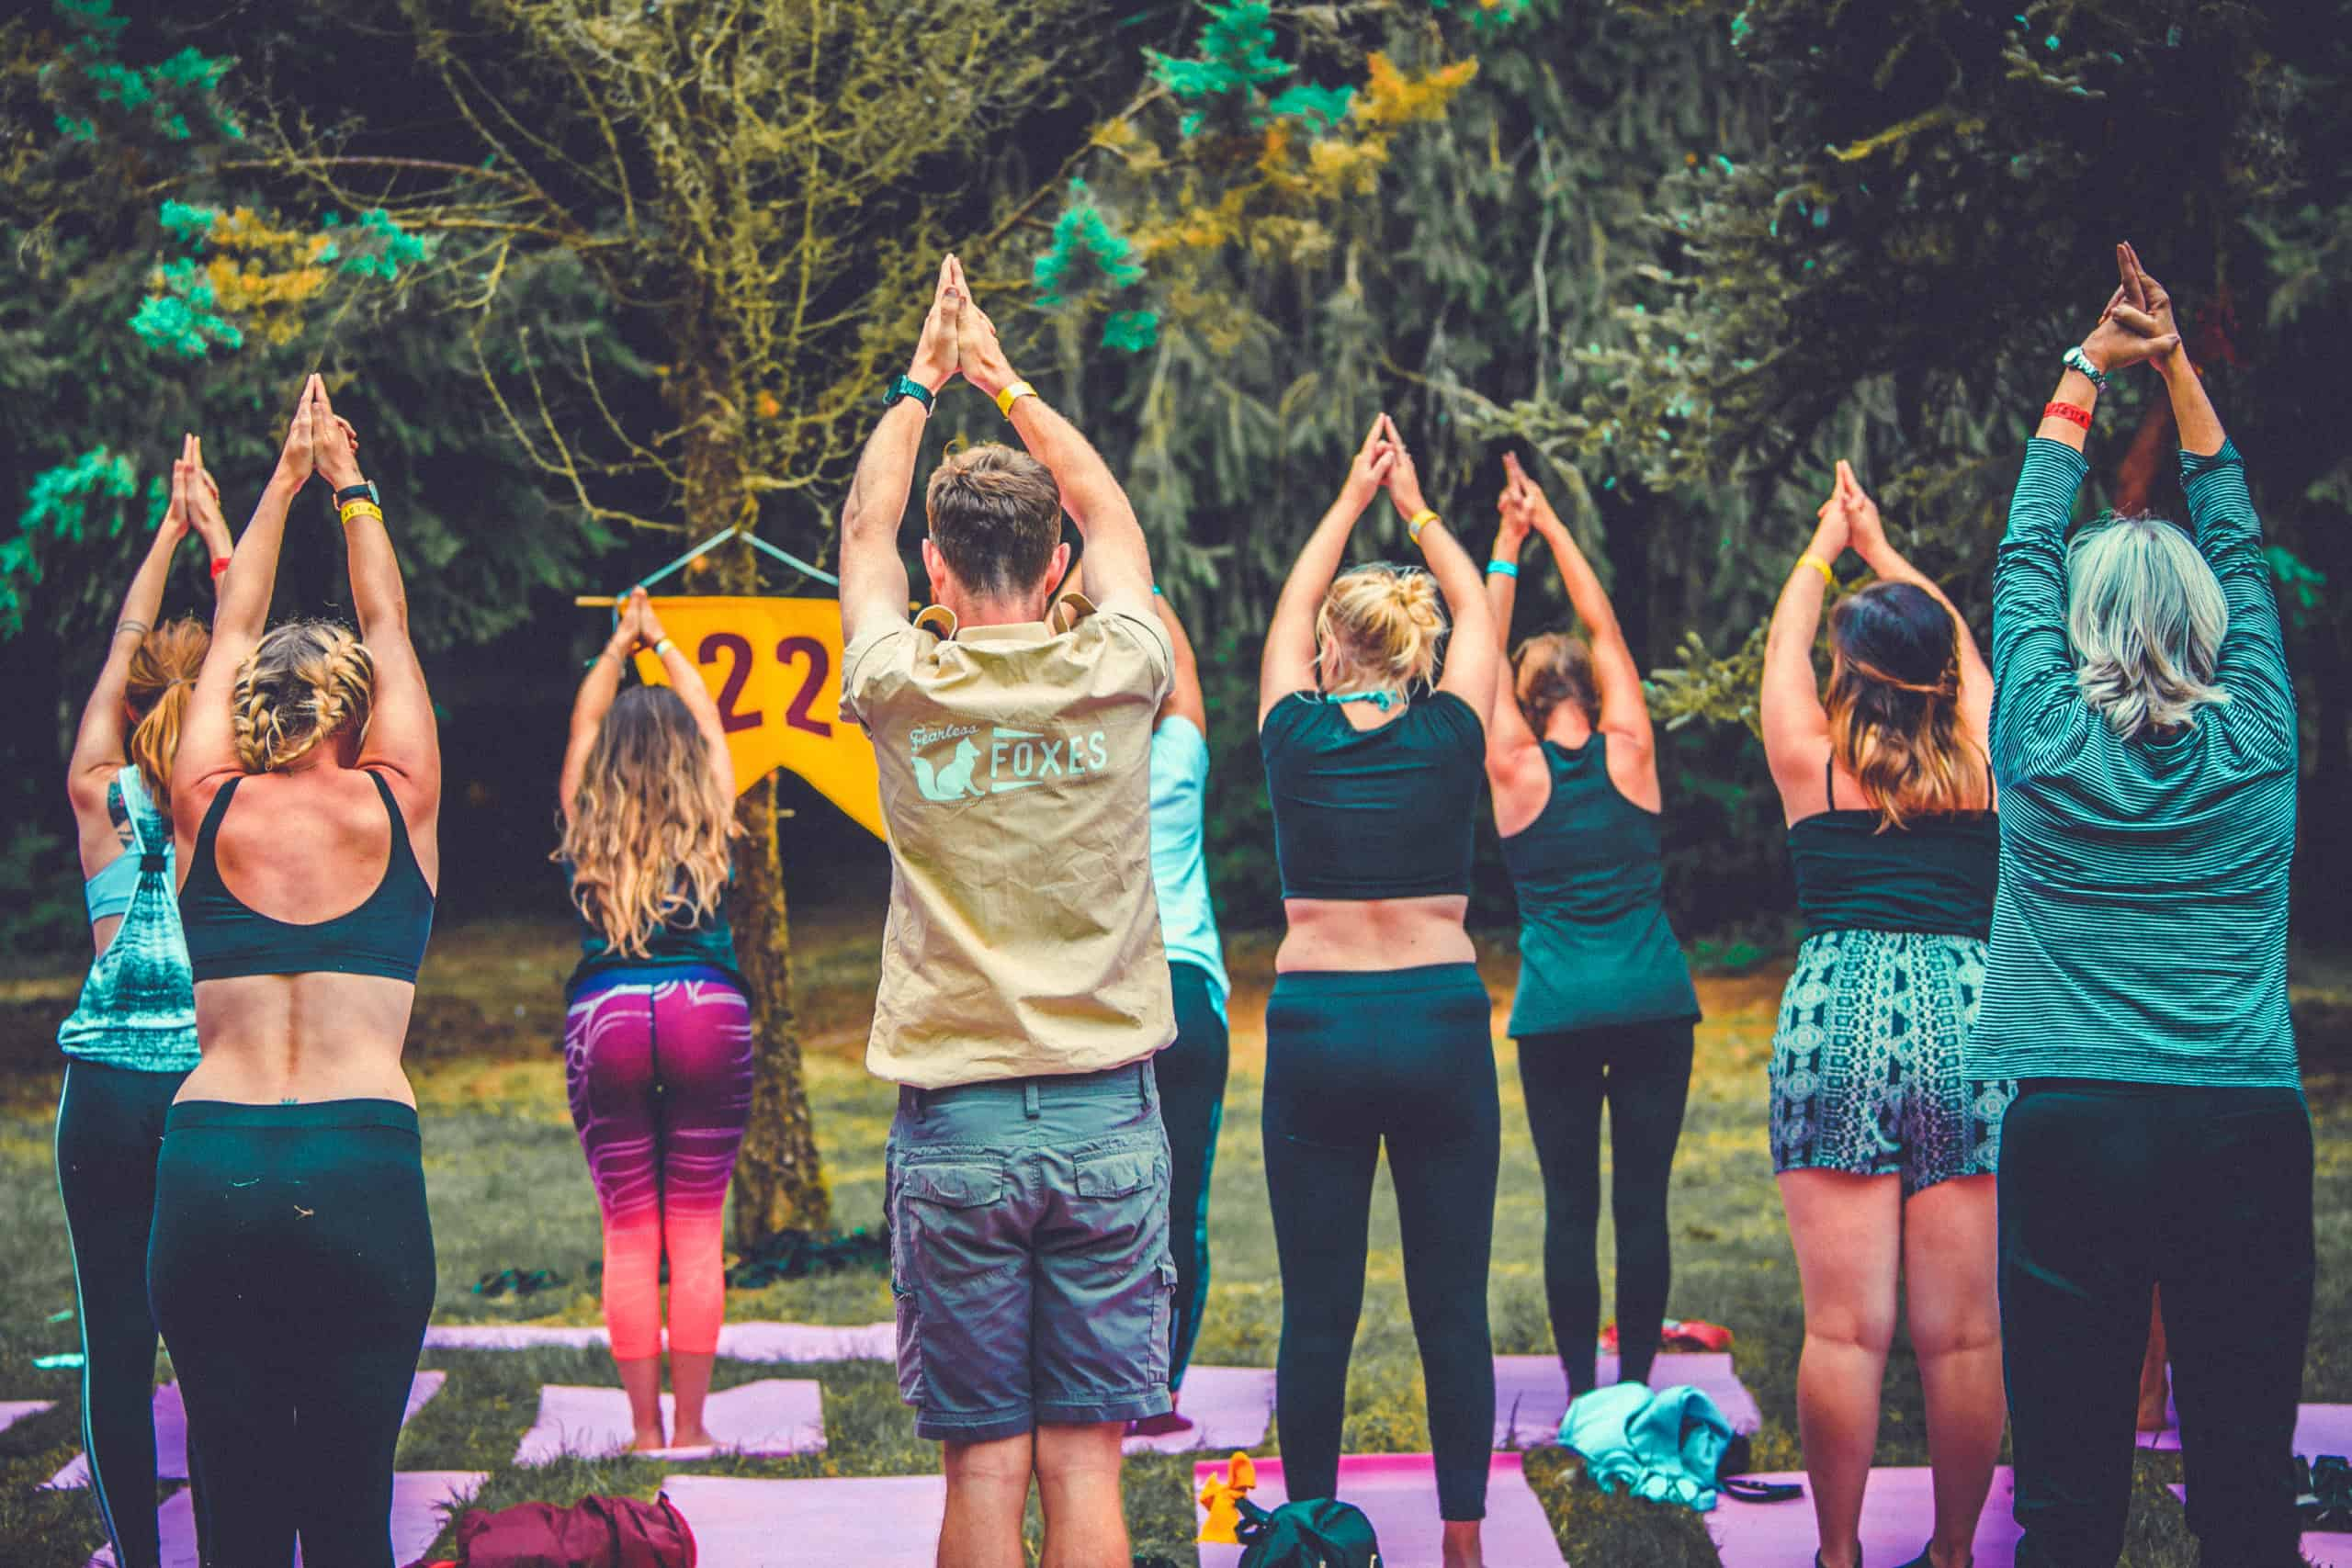 Group of people doing yoga outside at Camp Wildfire. The UK's Best Alternative Festival. UK's Top Unique Event. A summer weekend break in a forest near London and Kent. An outdoor woodland retreat featuring adventure activities, live music, DJs, parties and camping. Half summer adventure activity camp, half music festival, for adults only.